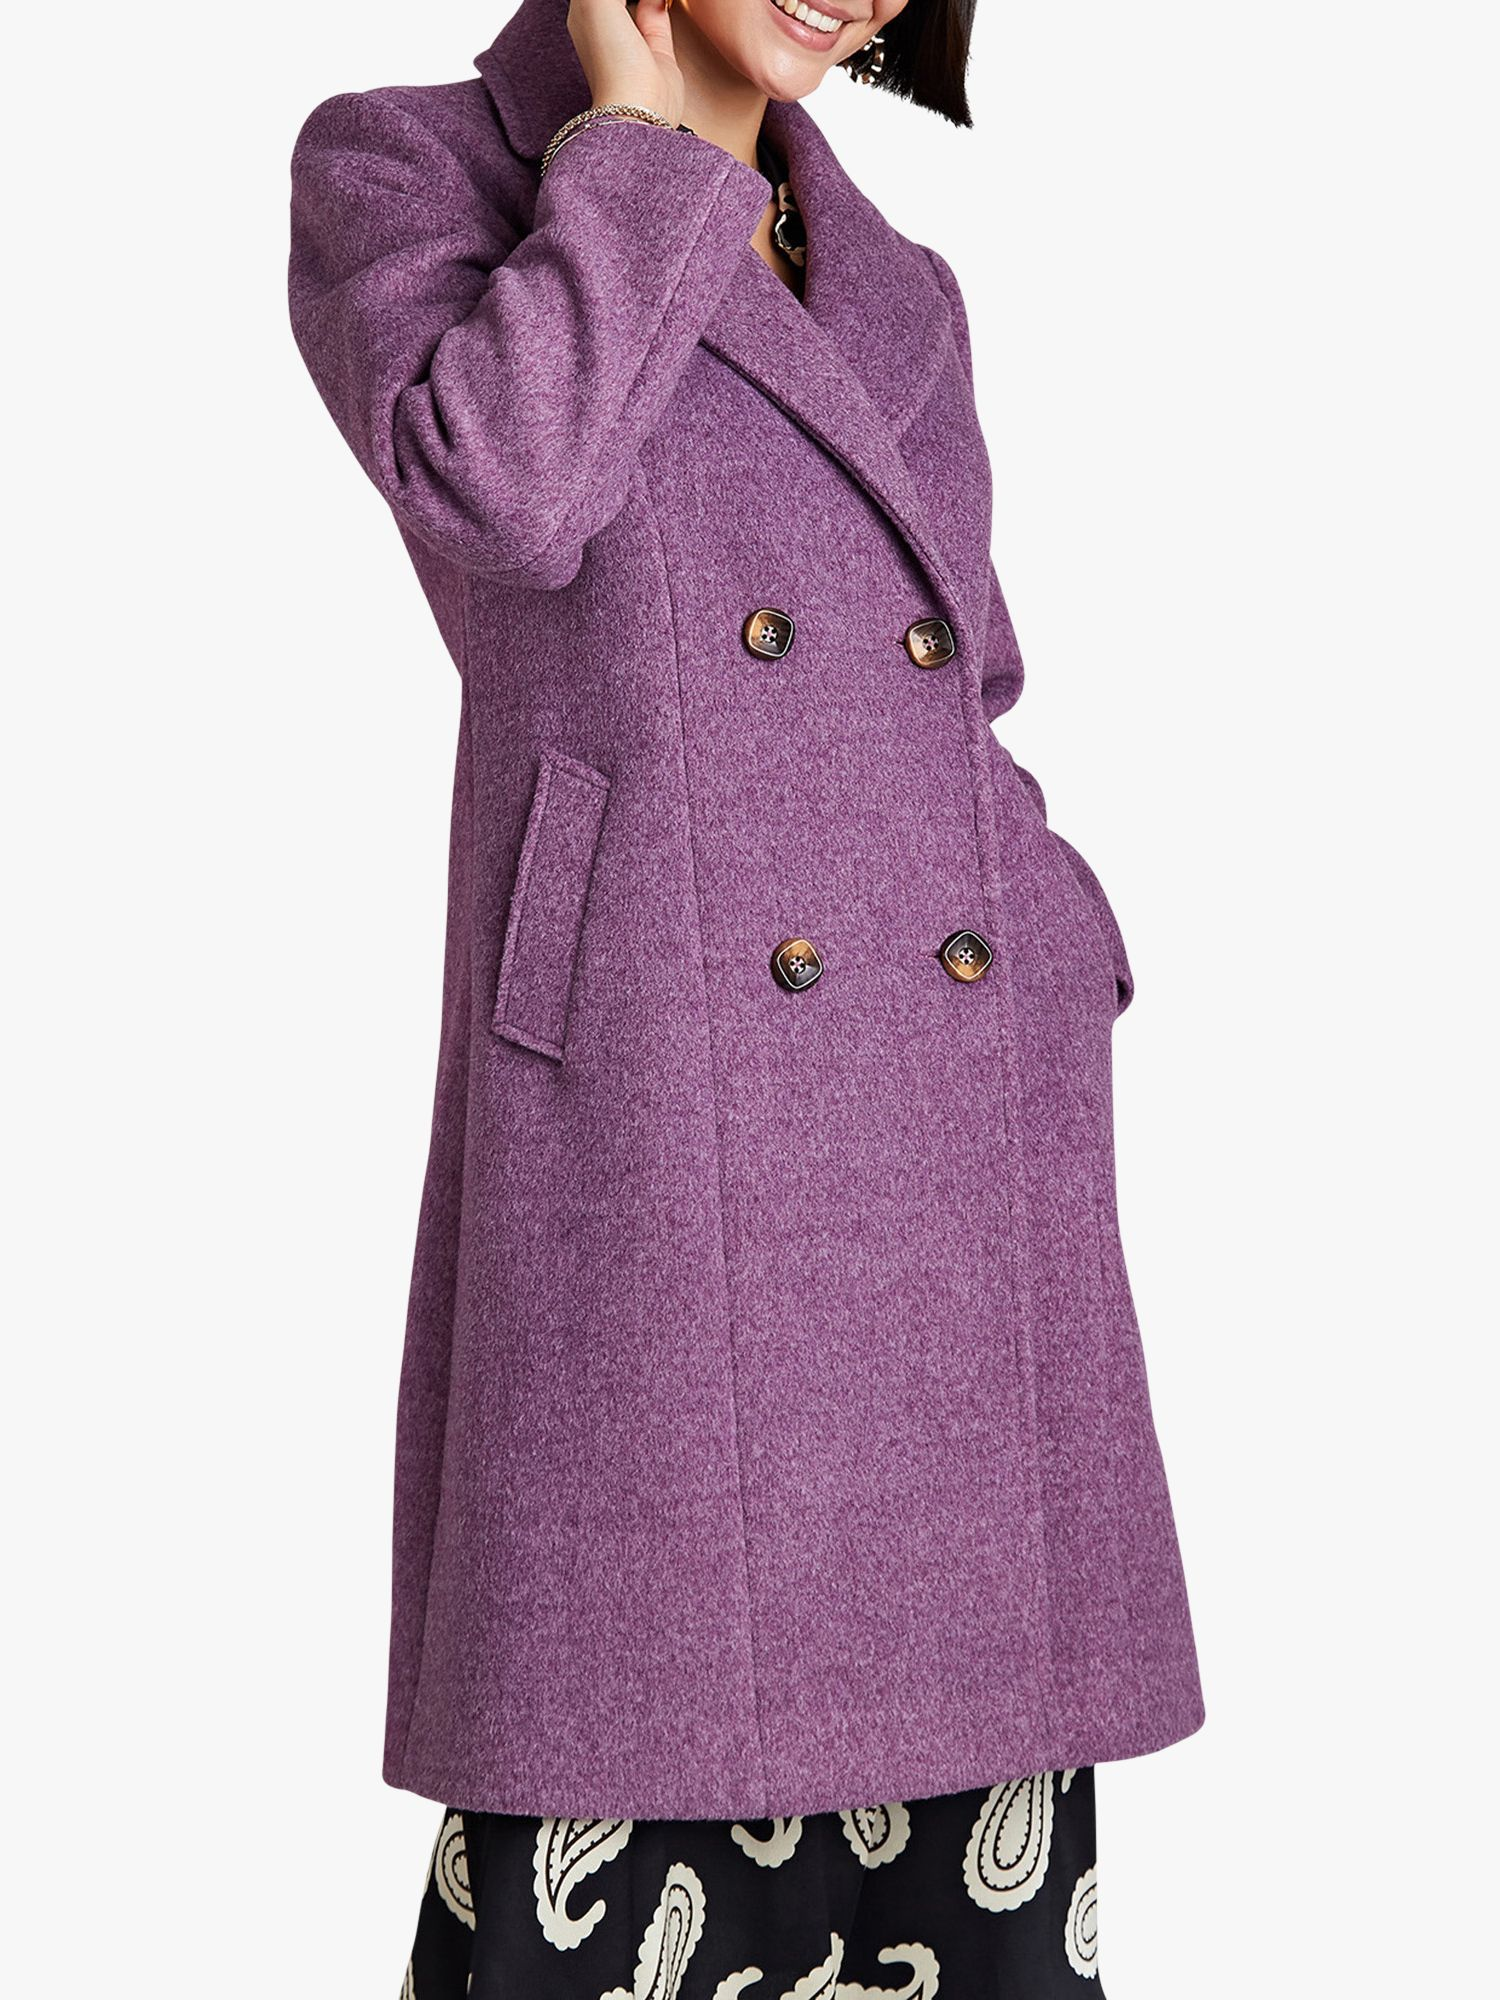 Yumi Yumi Crombie Coat with Button Detail, Plum